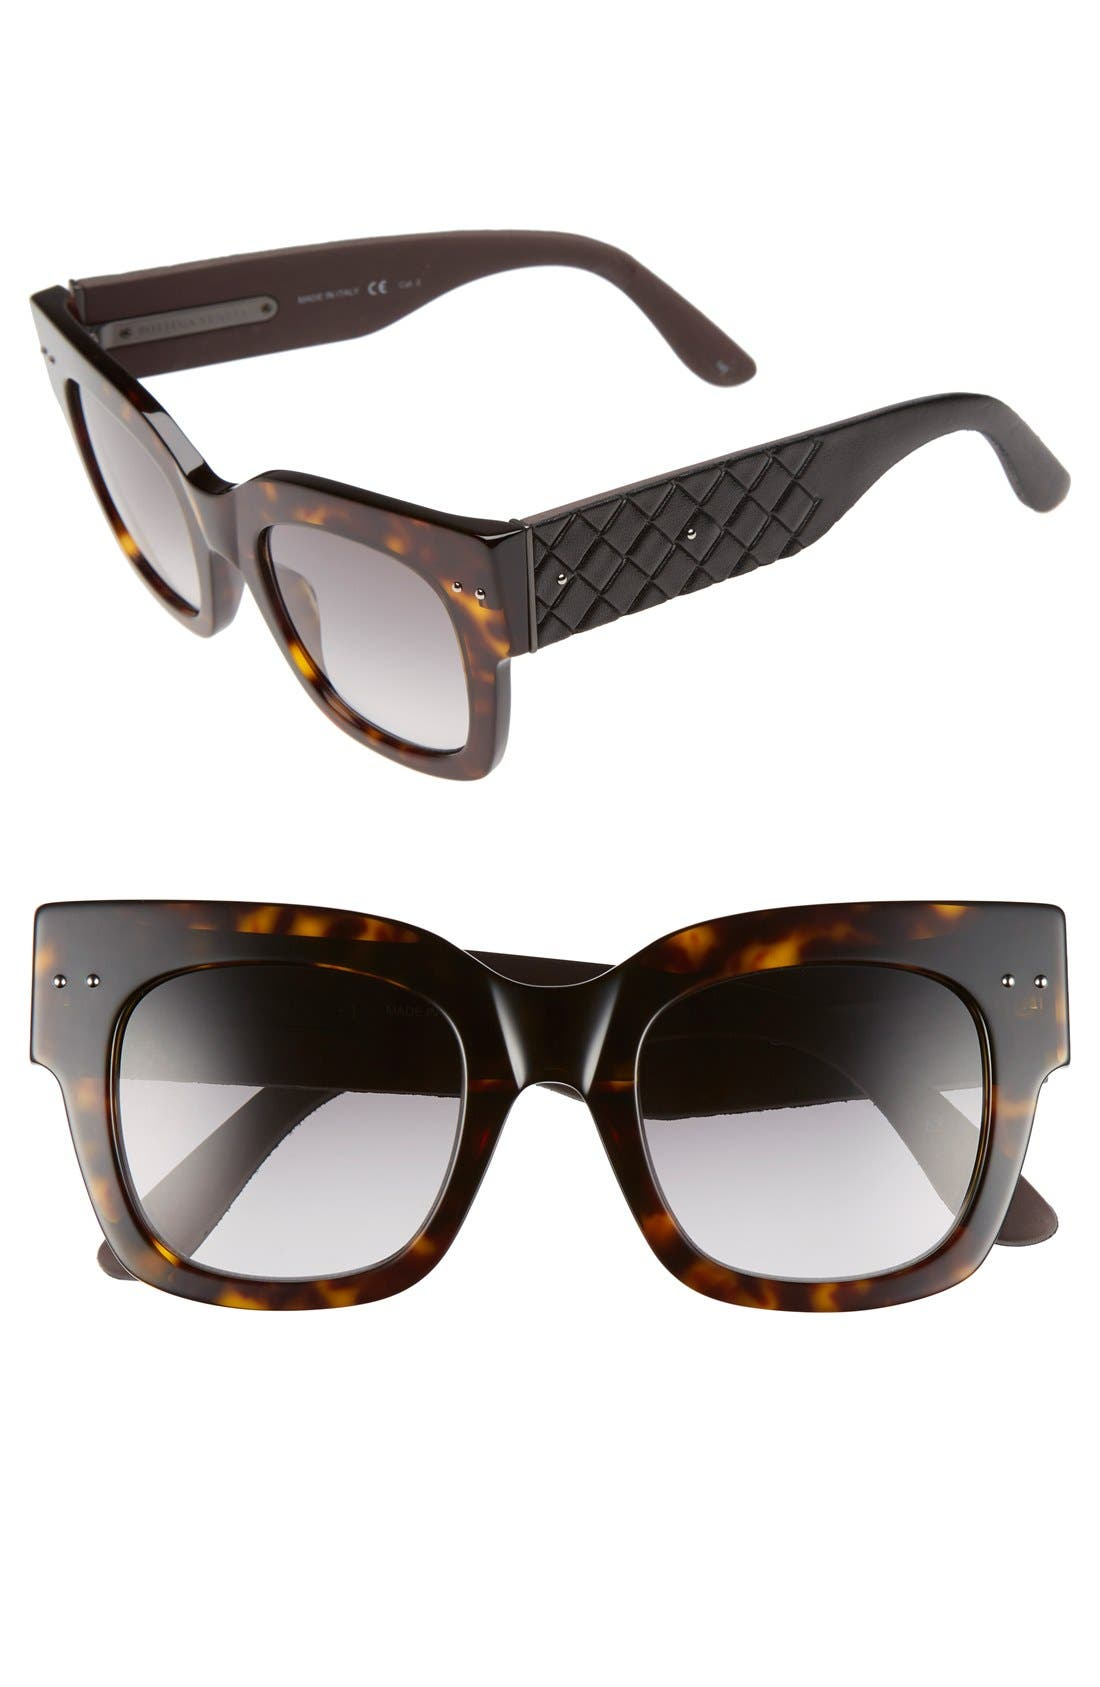 BOTTEGA VENETA 49mm Sunglasses